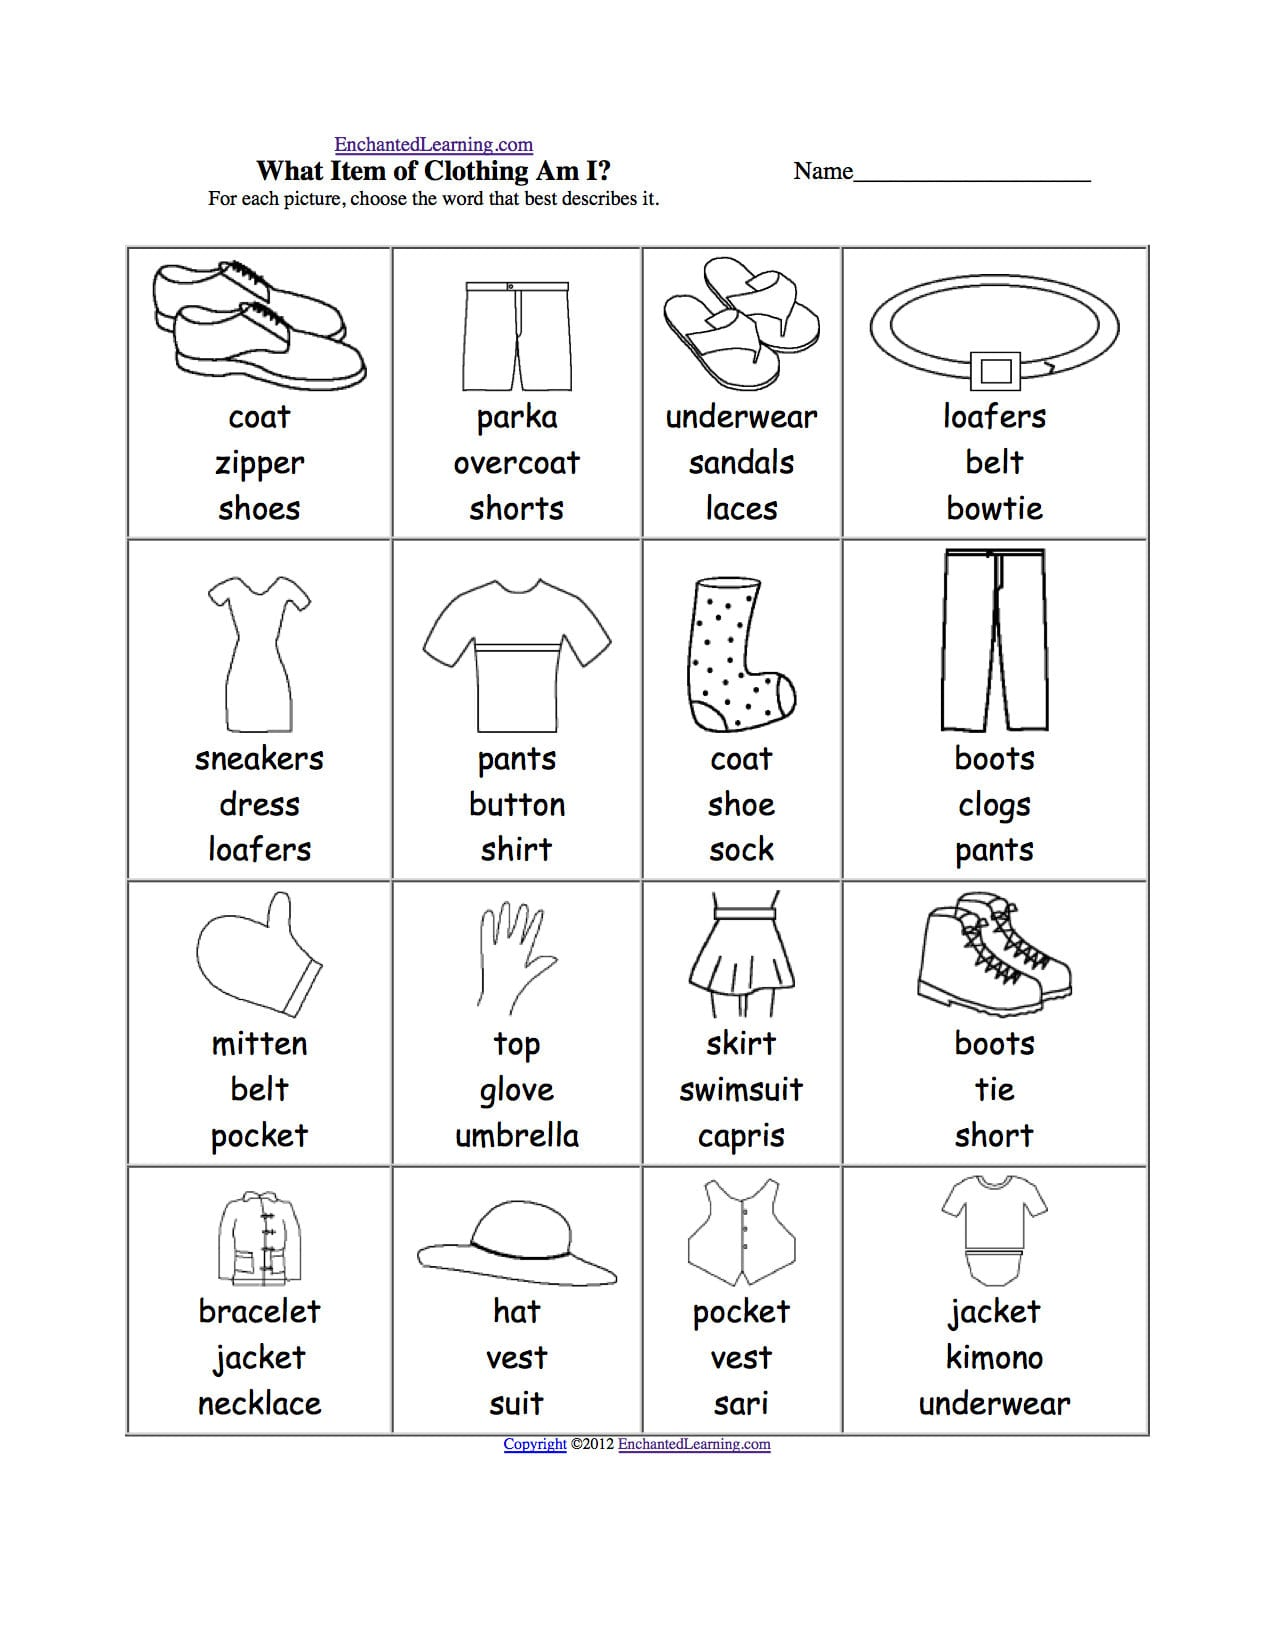 Clothes At Enchantedlearning As Well As Sorting Clothes Worksheet